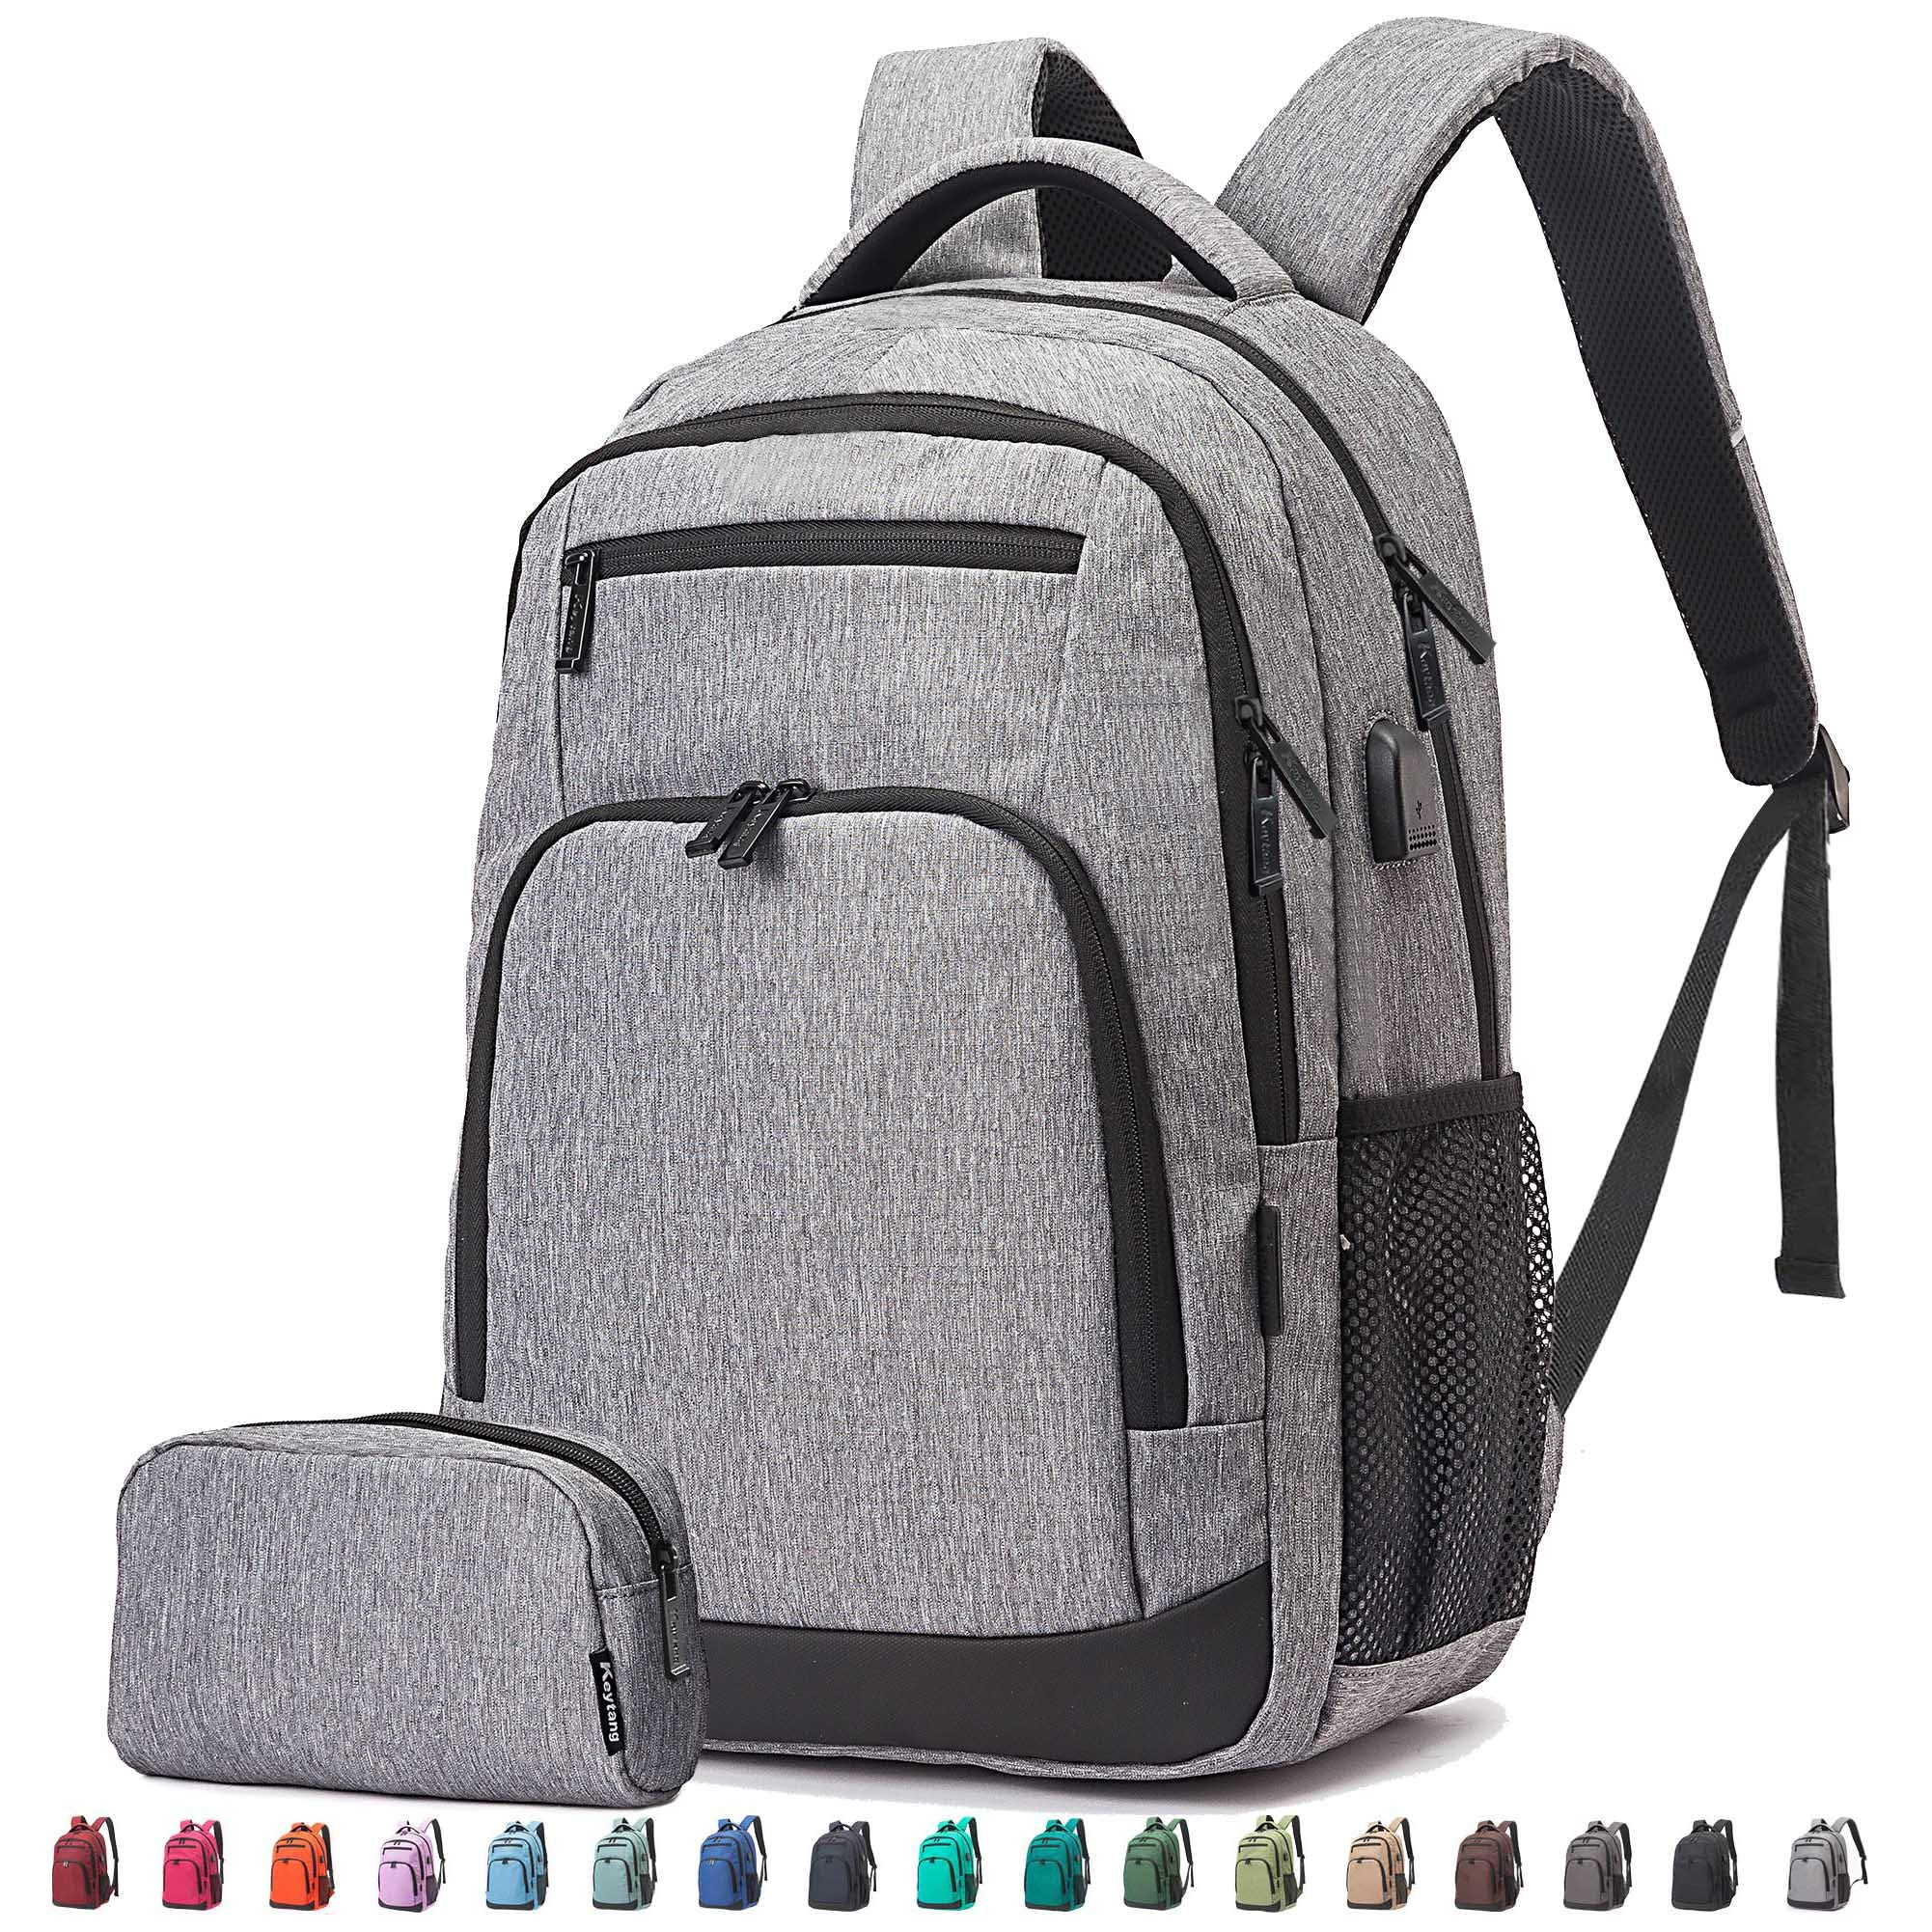 Travel Laptop Business Backpack, Anti Theft Water Resistant College School Computer Bagpack, Gifts for Men & Women Fits 15.6 Inch Notebook with USB Charging Port Bonus a Small pencil Case, Gray